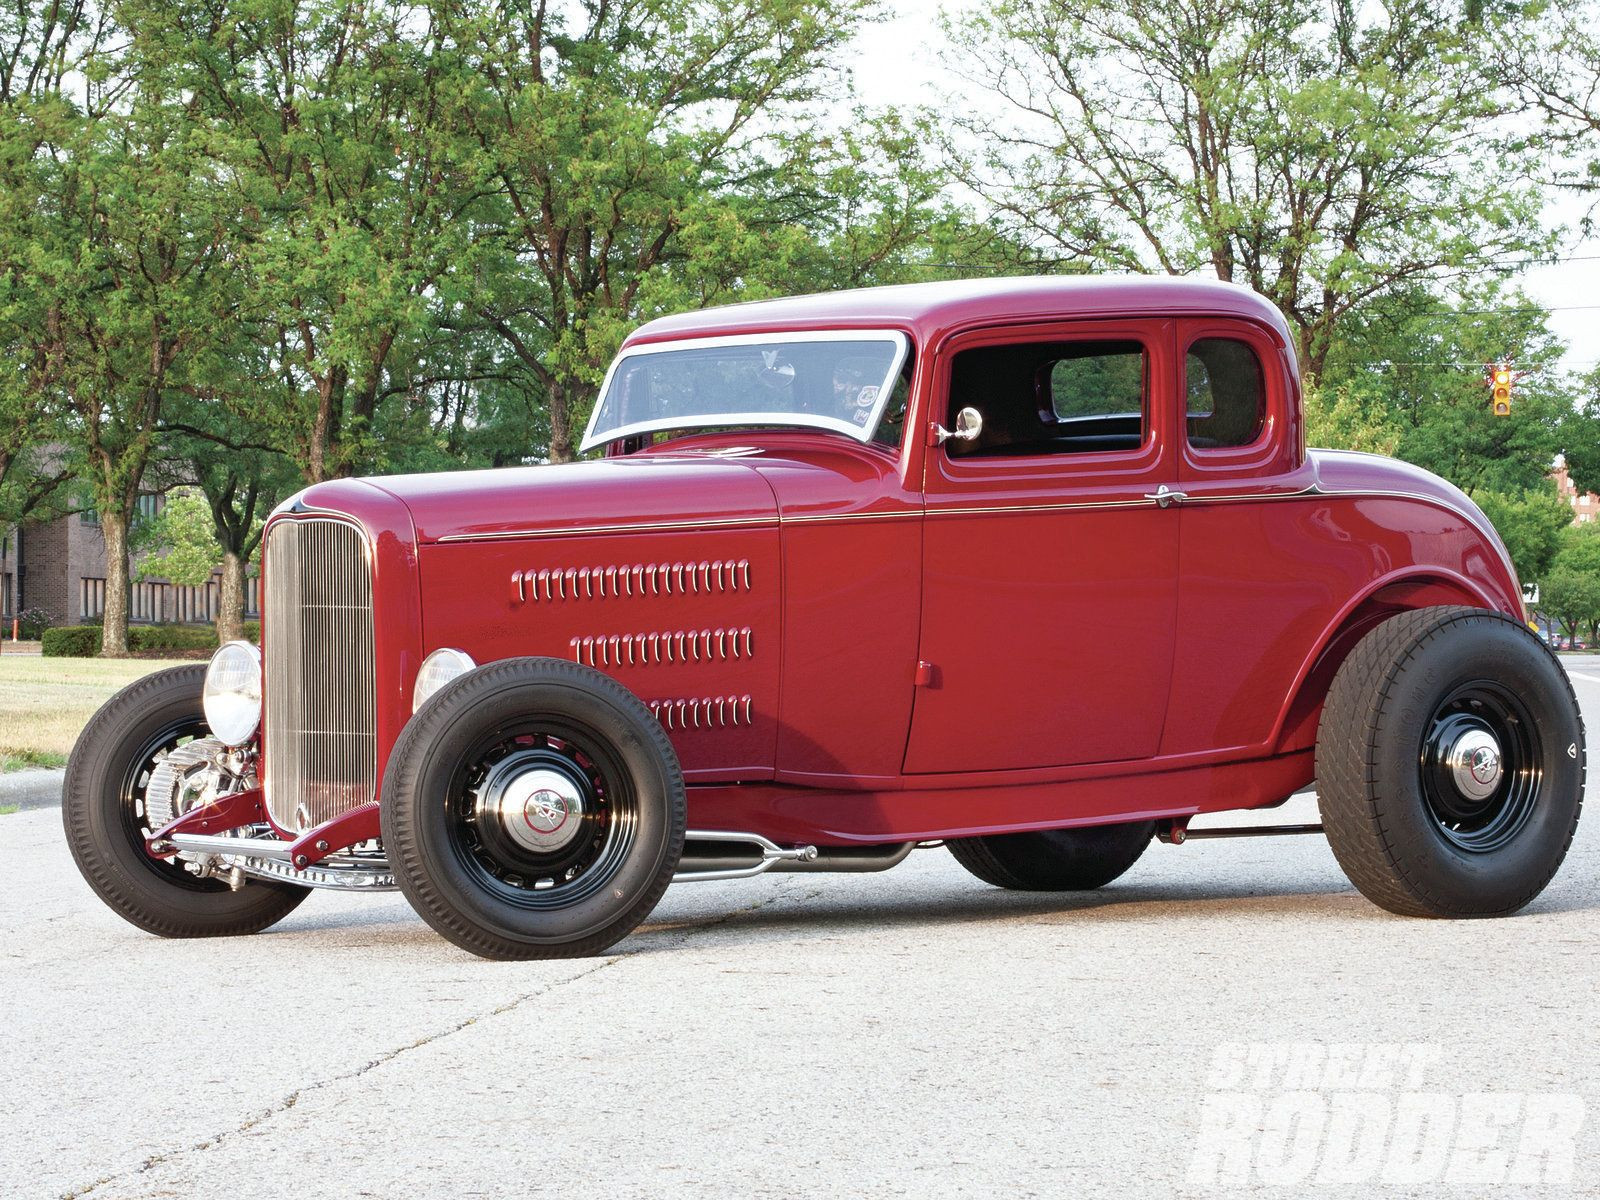 Red 1932 Ford Coupe Driver Side Wheels Photo 1 | Hot Rods ...